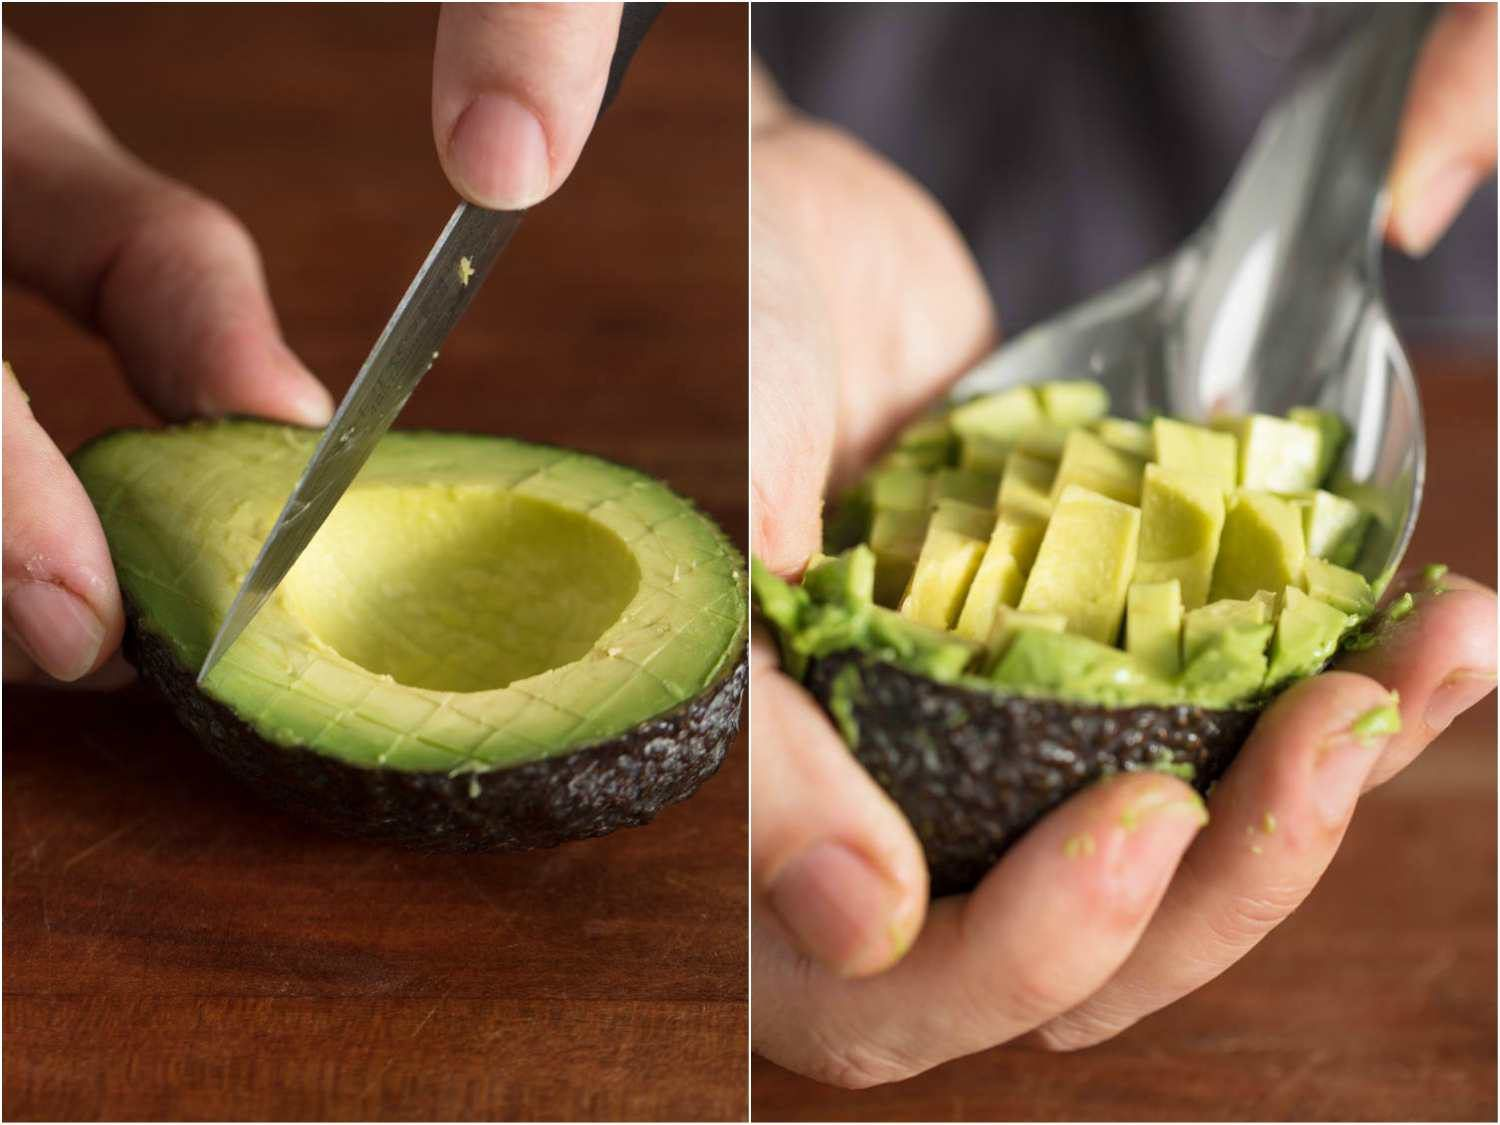 Collage of two photos: dicing an avocado half and scooping out the dice